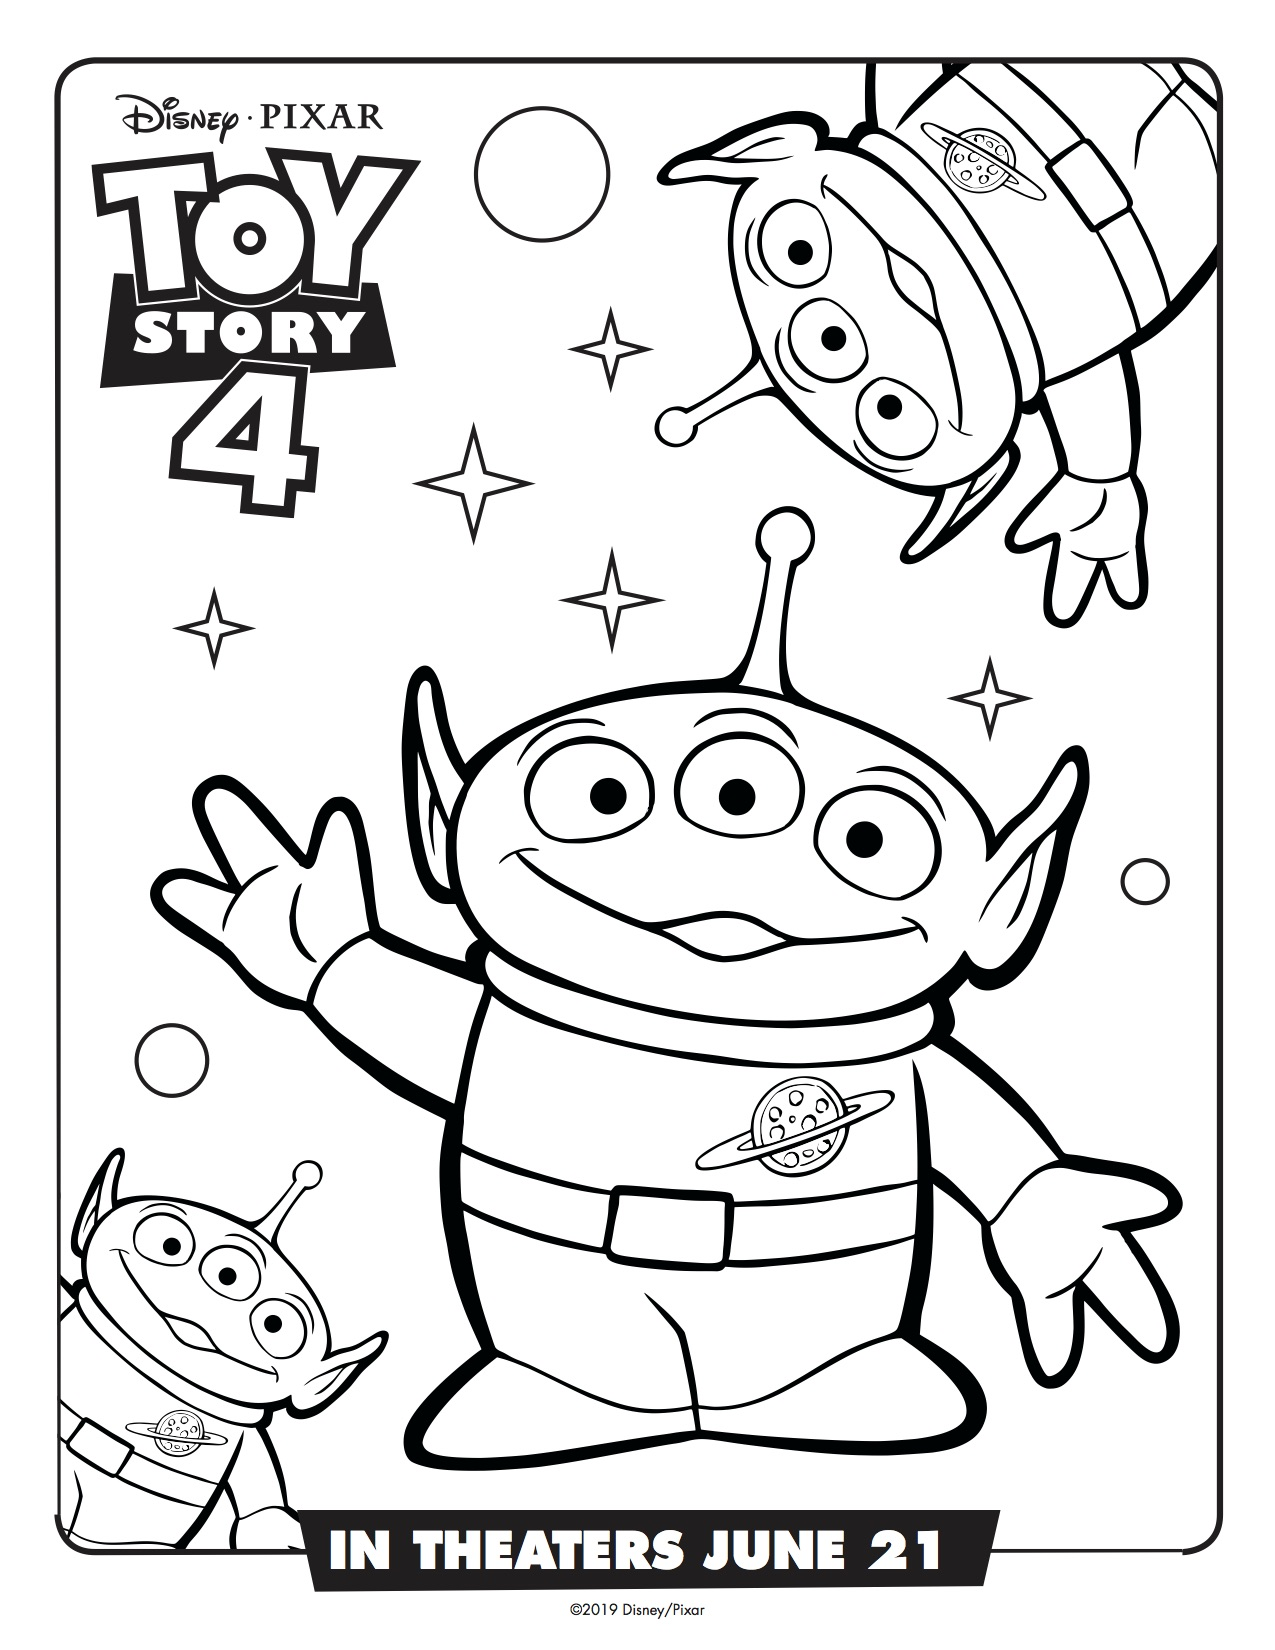 Toy-Story-4-Aliens-Printable-Coloring-Page Simply Sweet Days